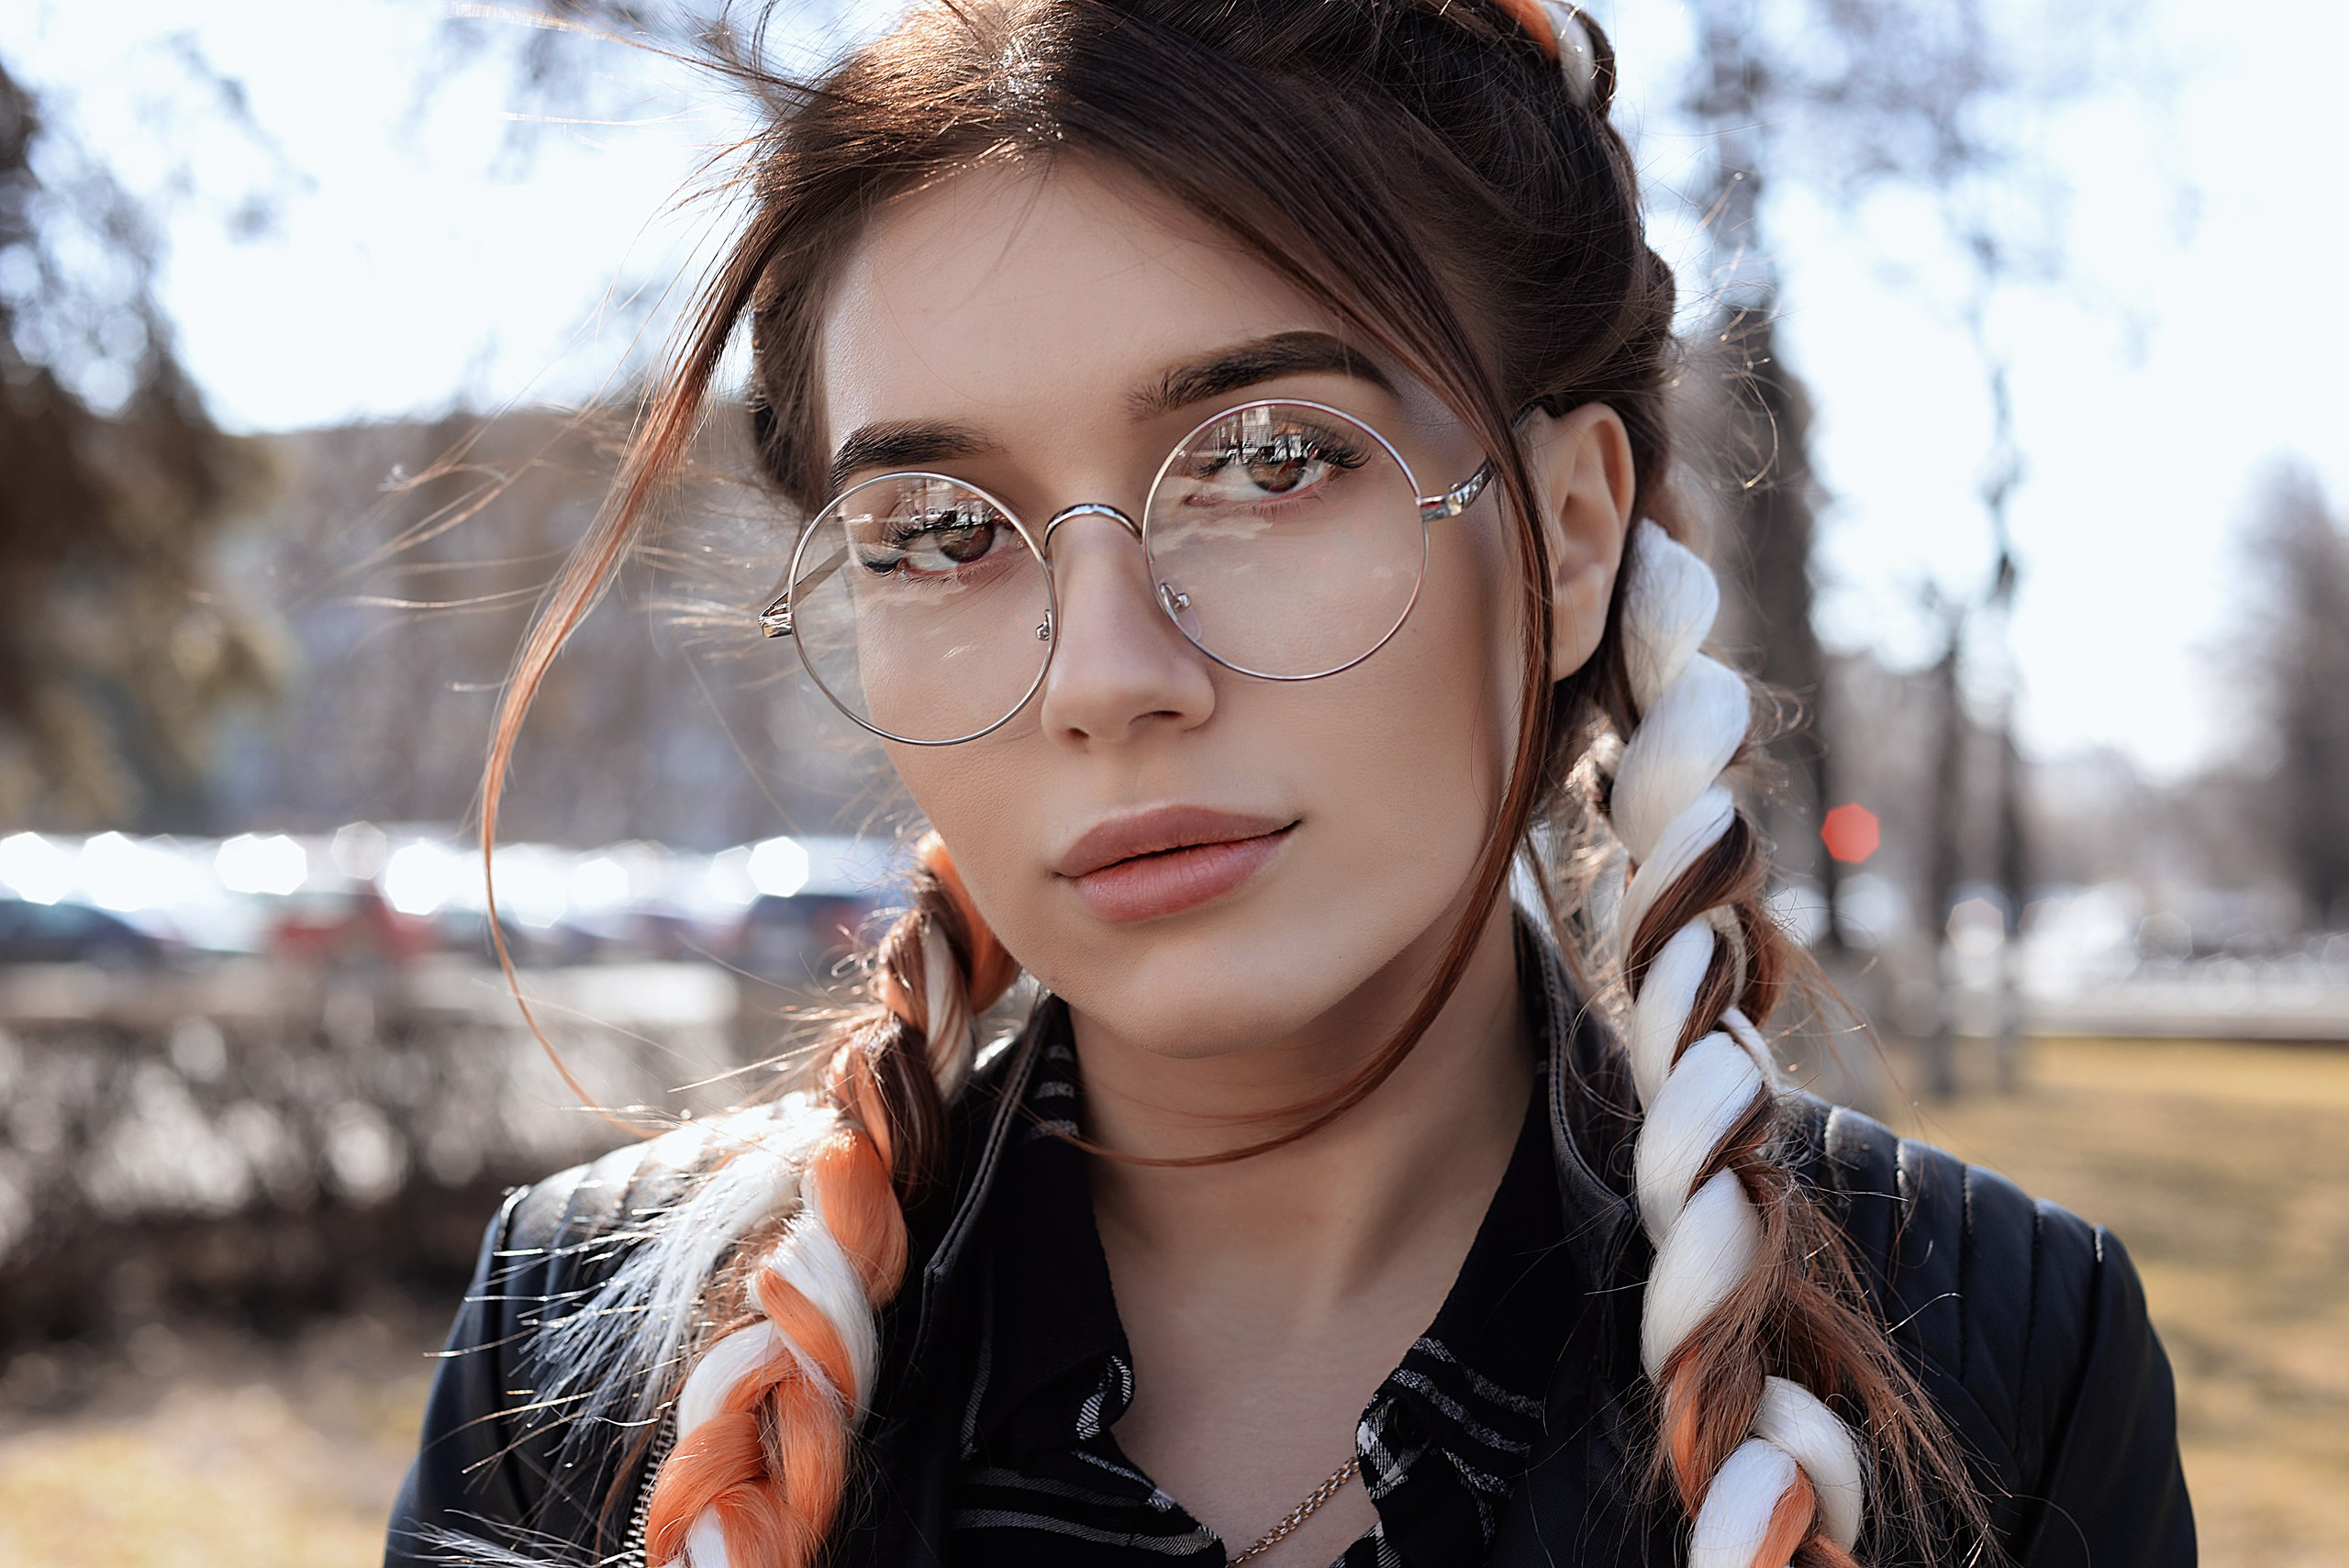 dua lipa glasses pictures wallpaper 65052